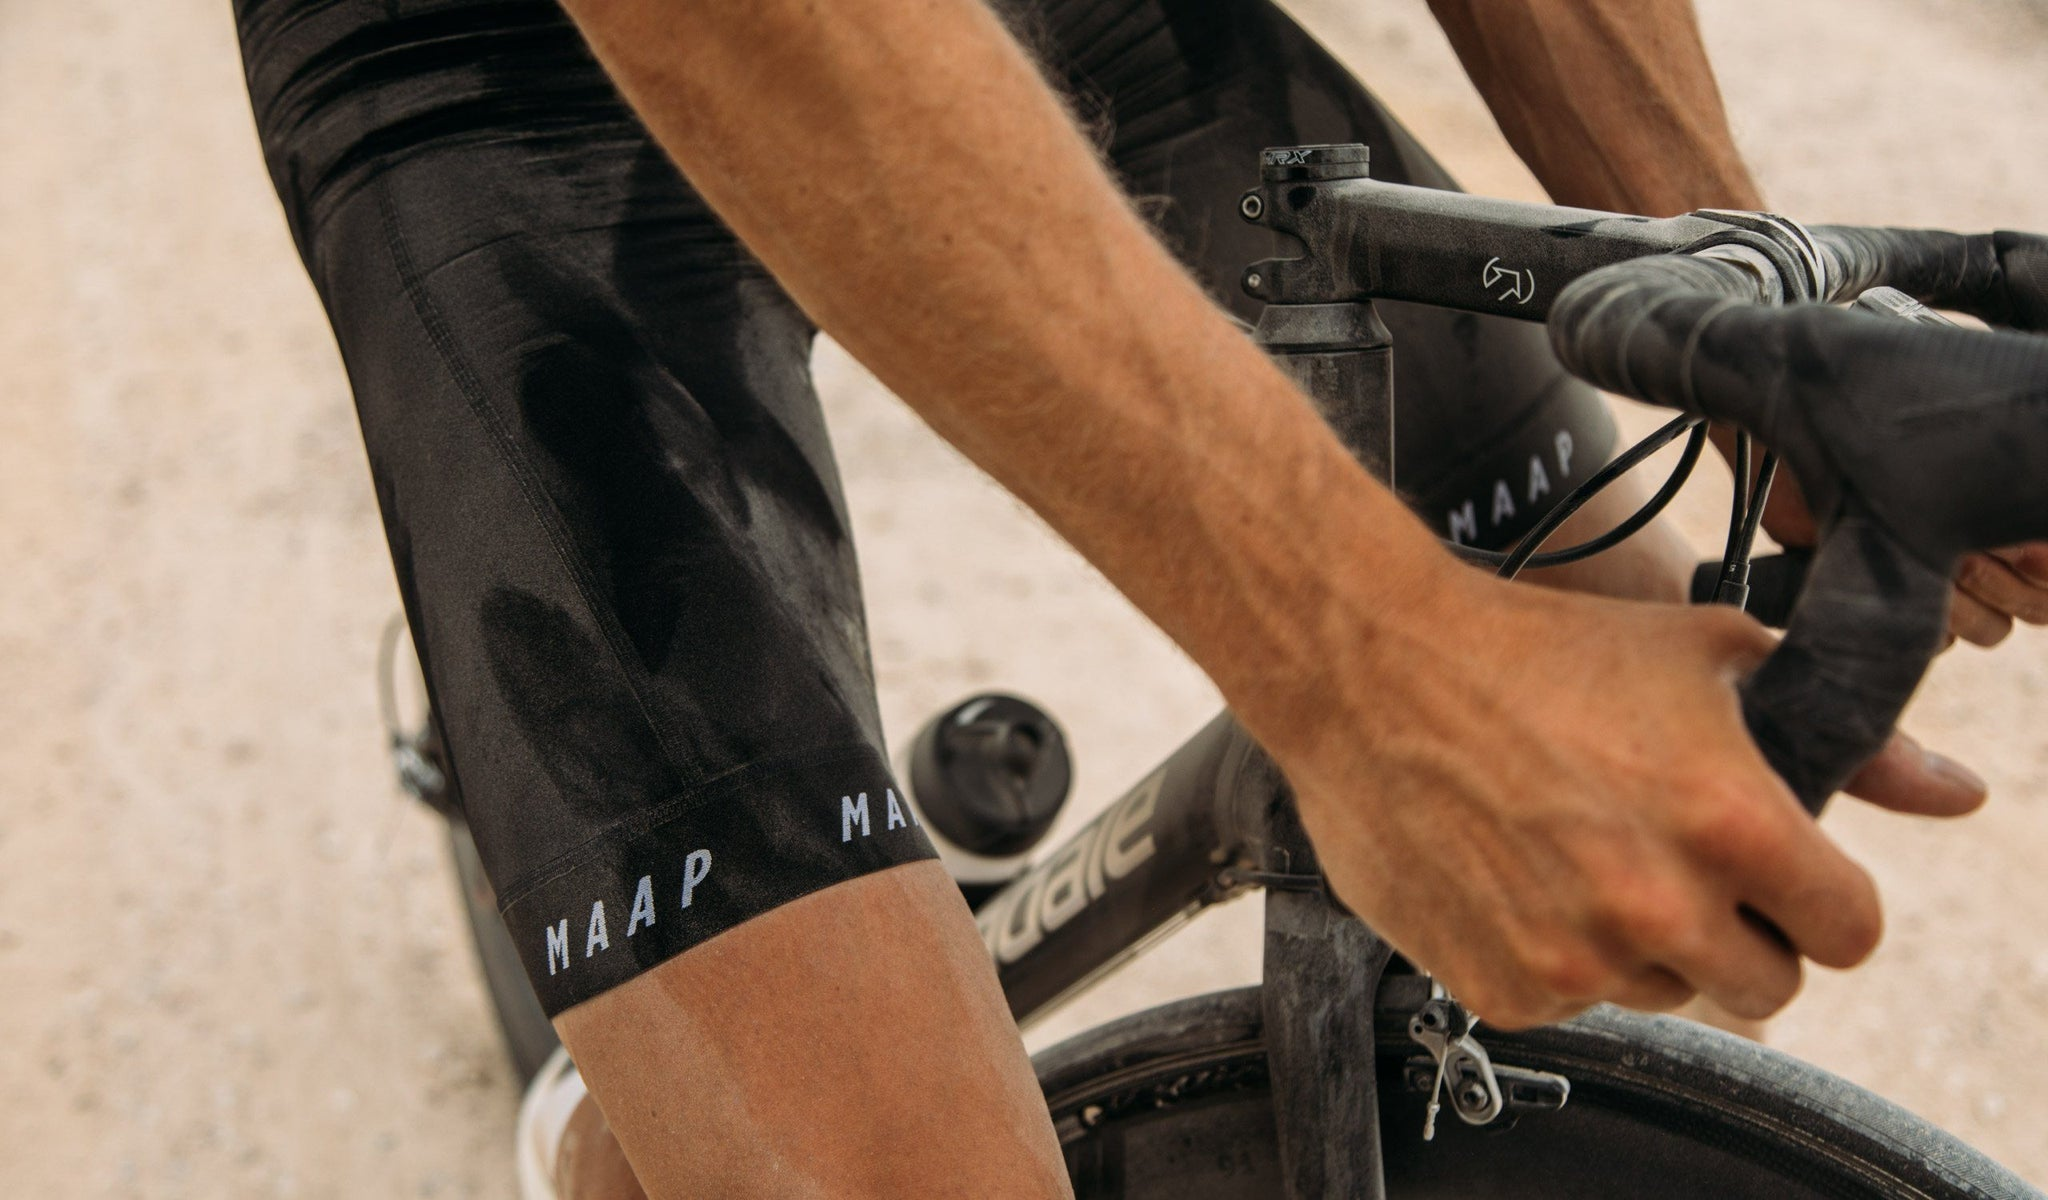 MAAP Pro Bib Shorts in Black for everyday riding.